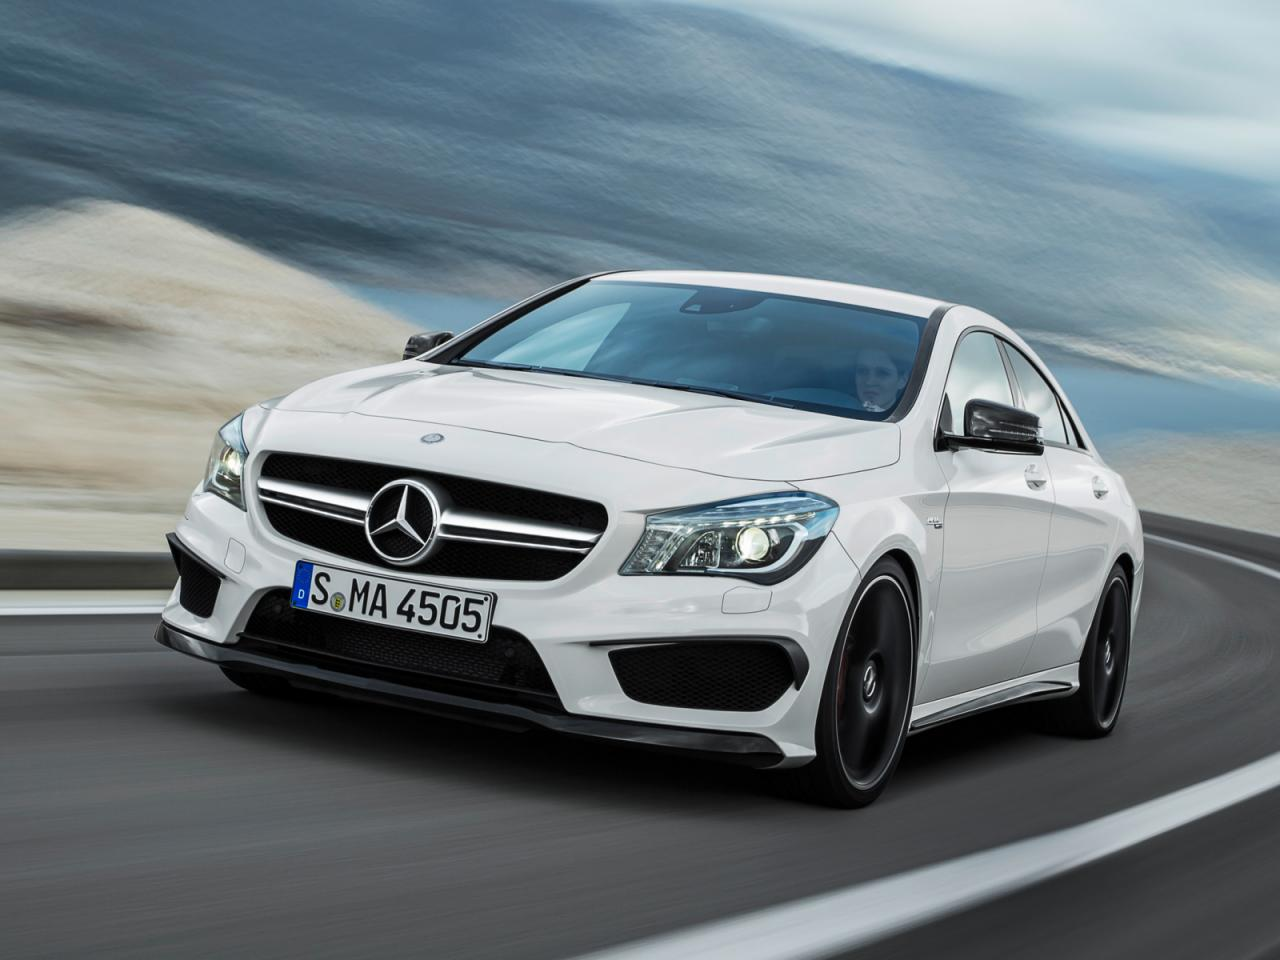 the official photos of the 2014 mercedes benz cla 45